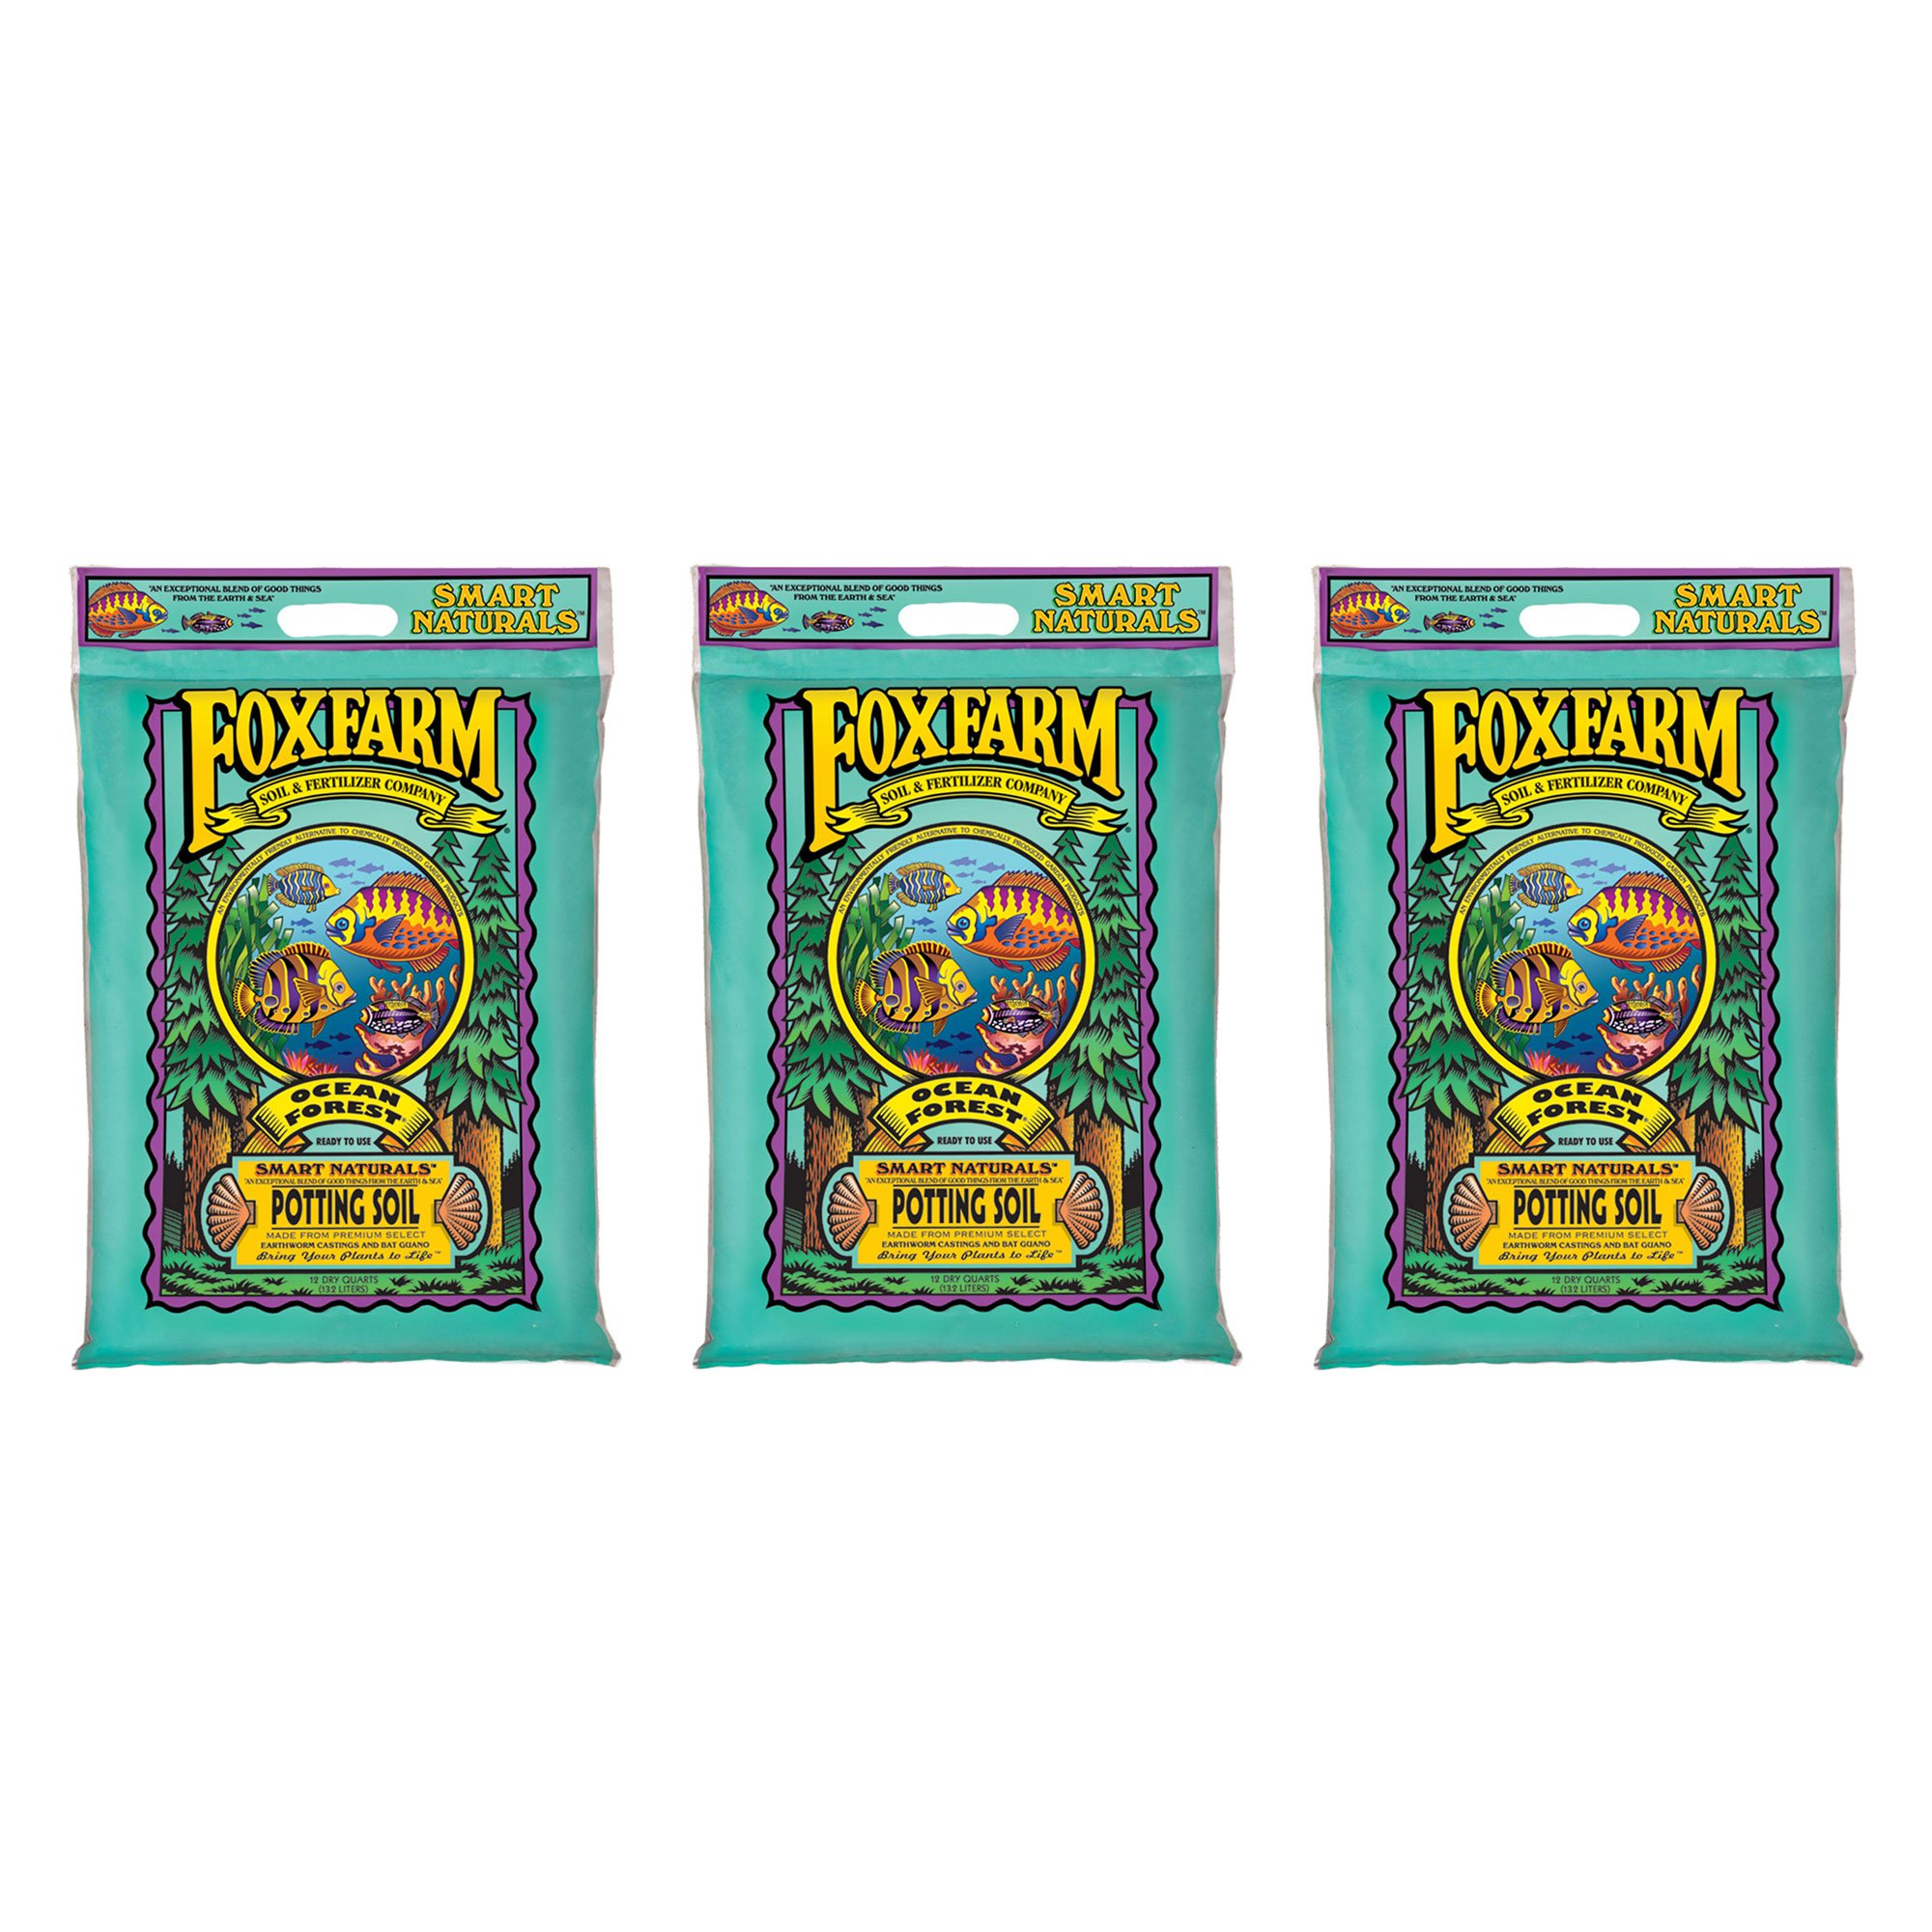 Foxfarm FX14053 12 Qt. Ocean Forest Garden Potting Soil Mix 6.3-6.8 pH (3 Pack)